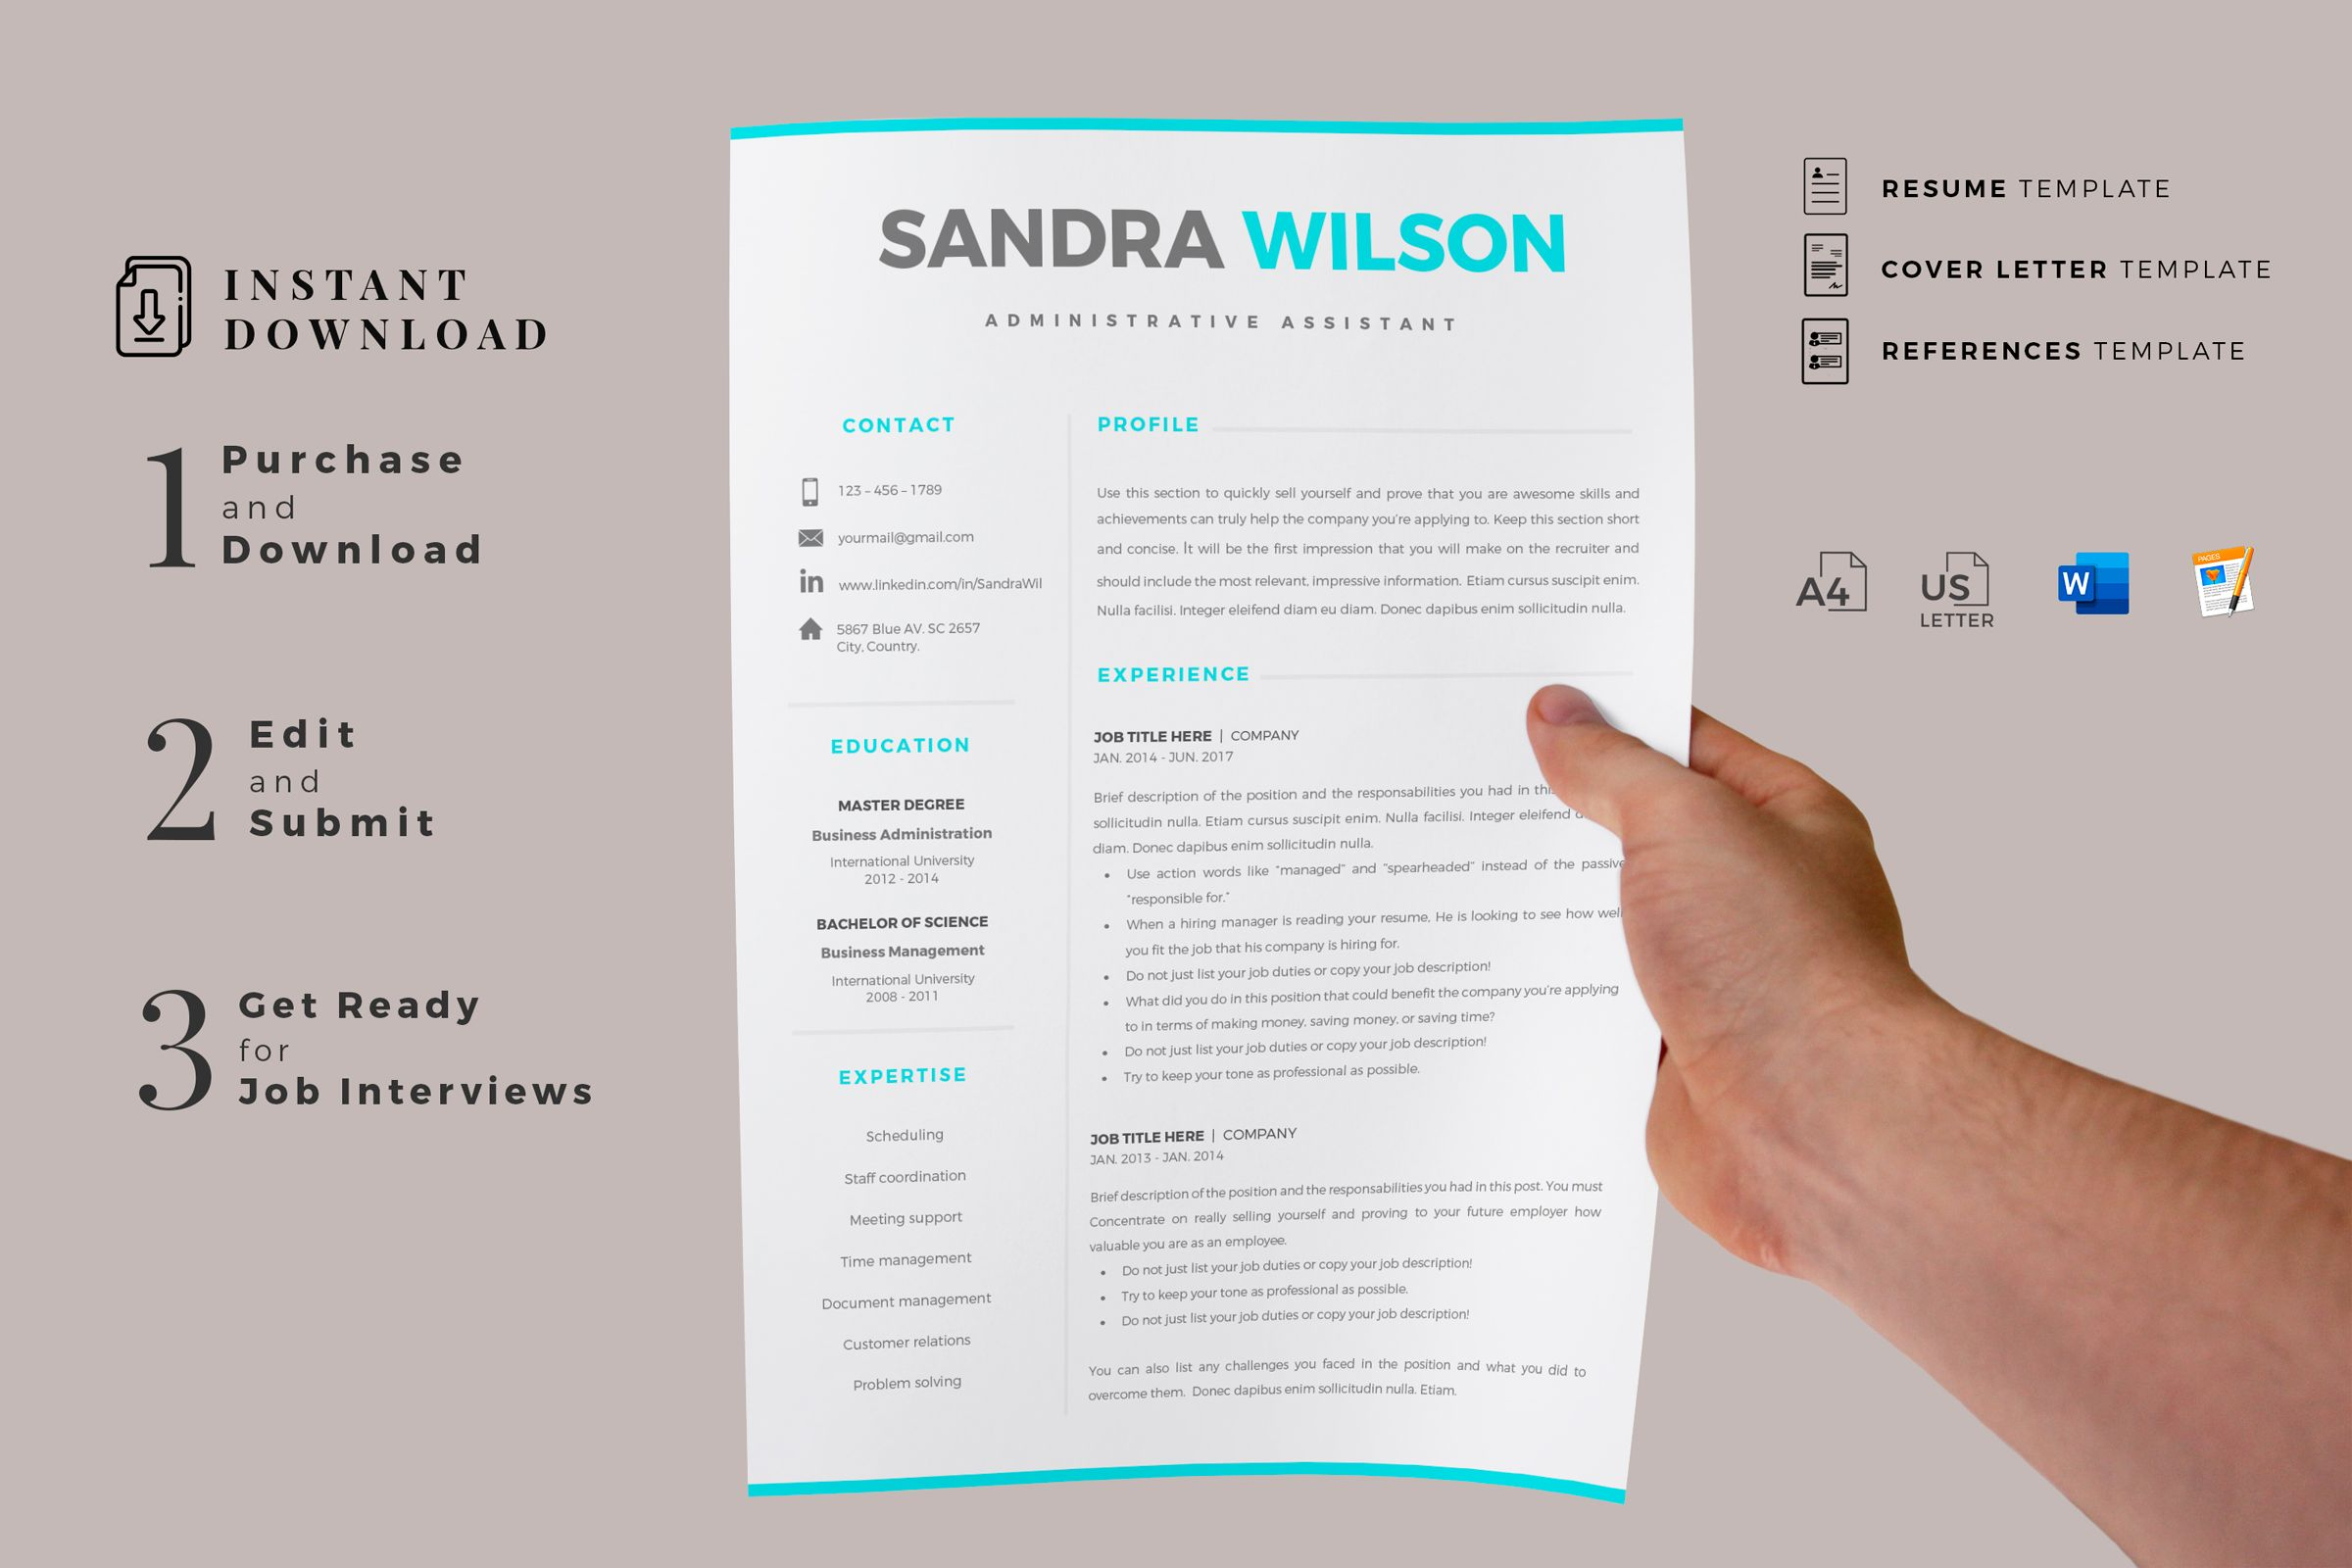 Creative Resume Templates For Ms Word And Mac Pages Professional Resume Templates And Matching Cove Resume Templates Resume Template Creative Resume Templates